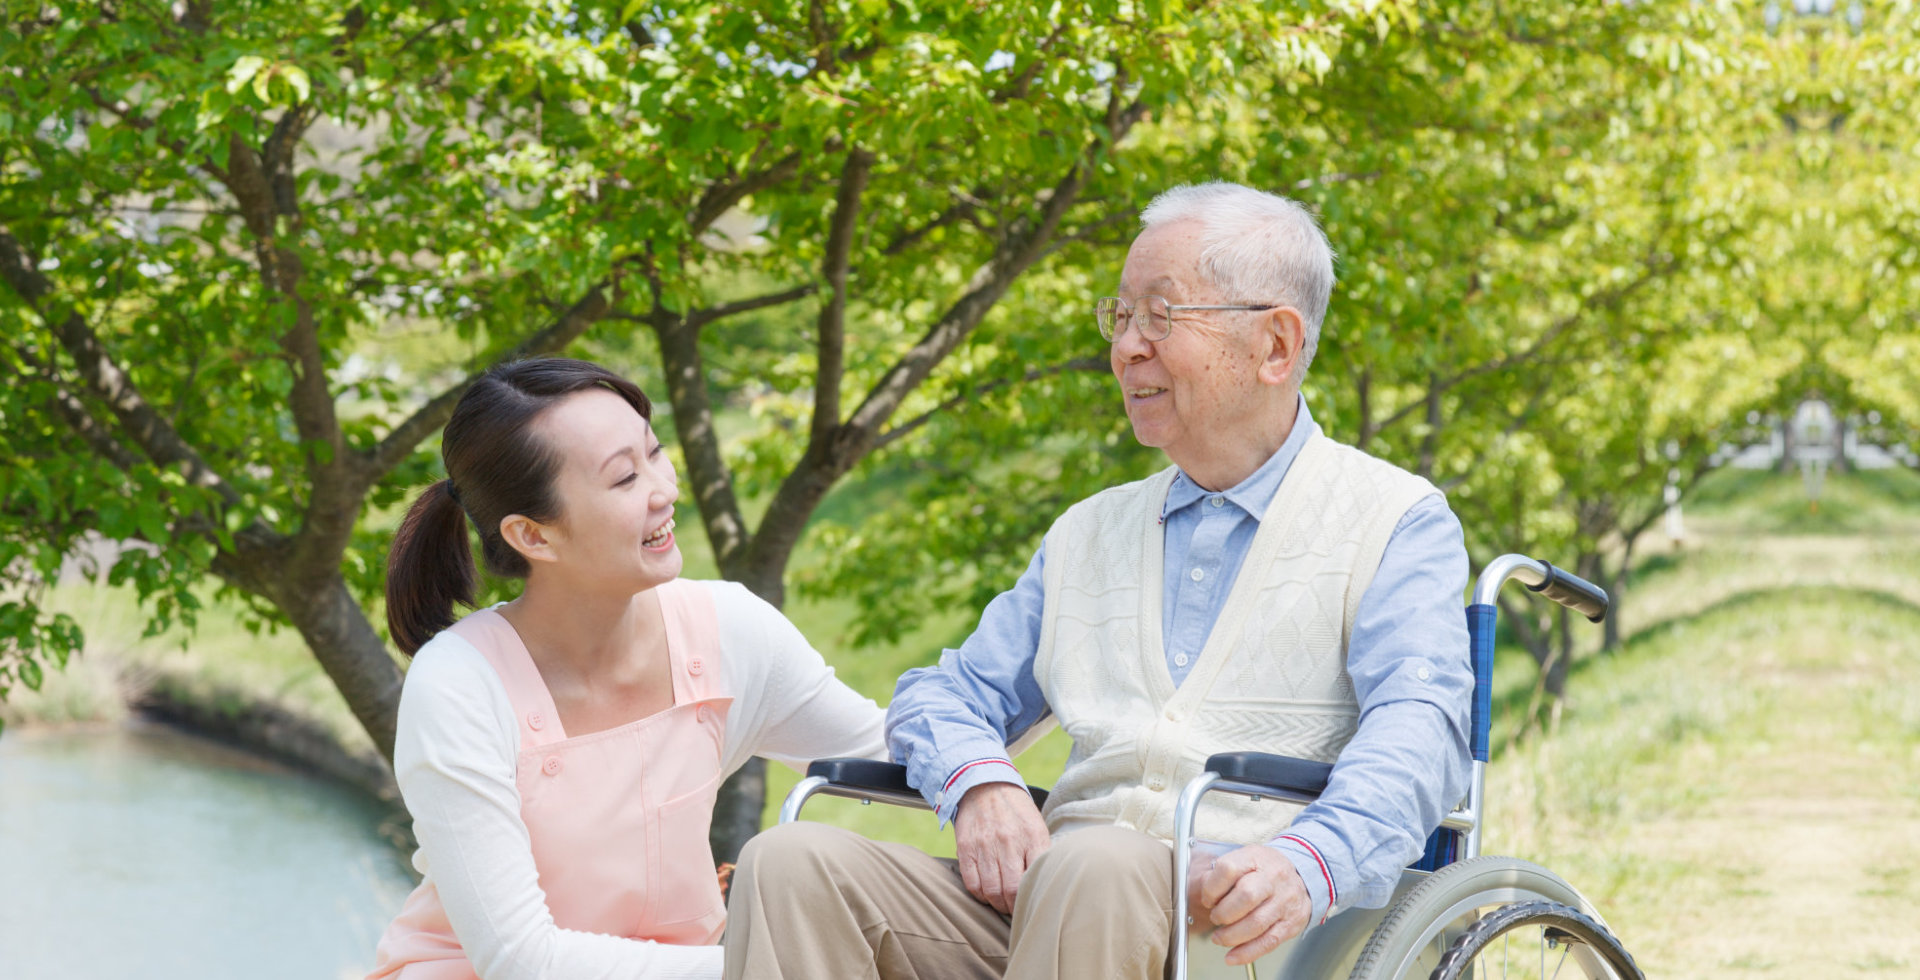 caregiver and elderly man smiling each other